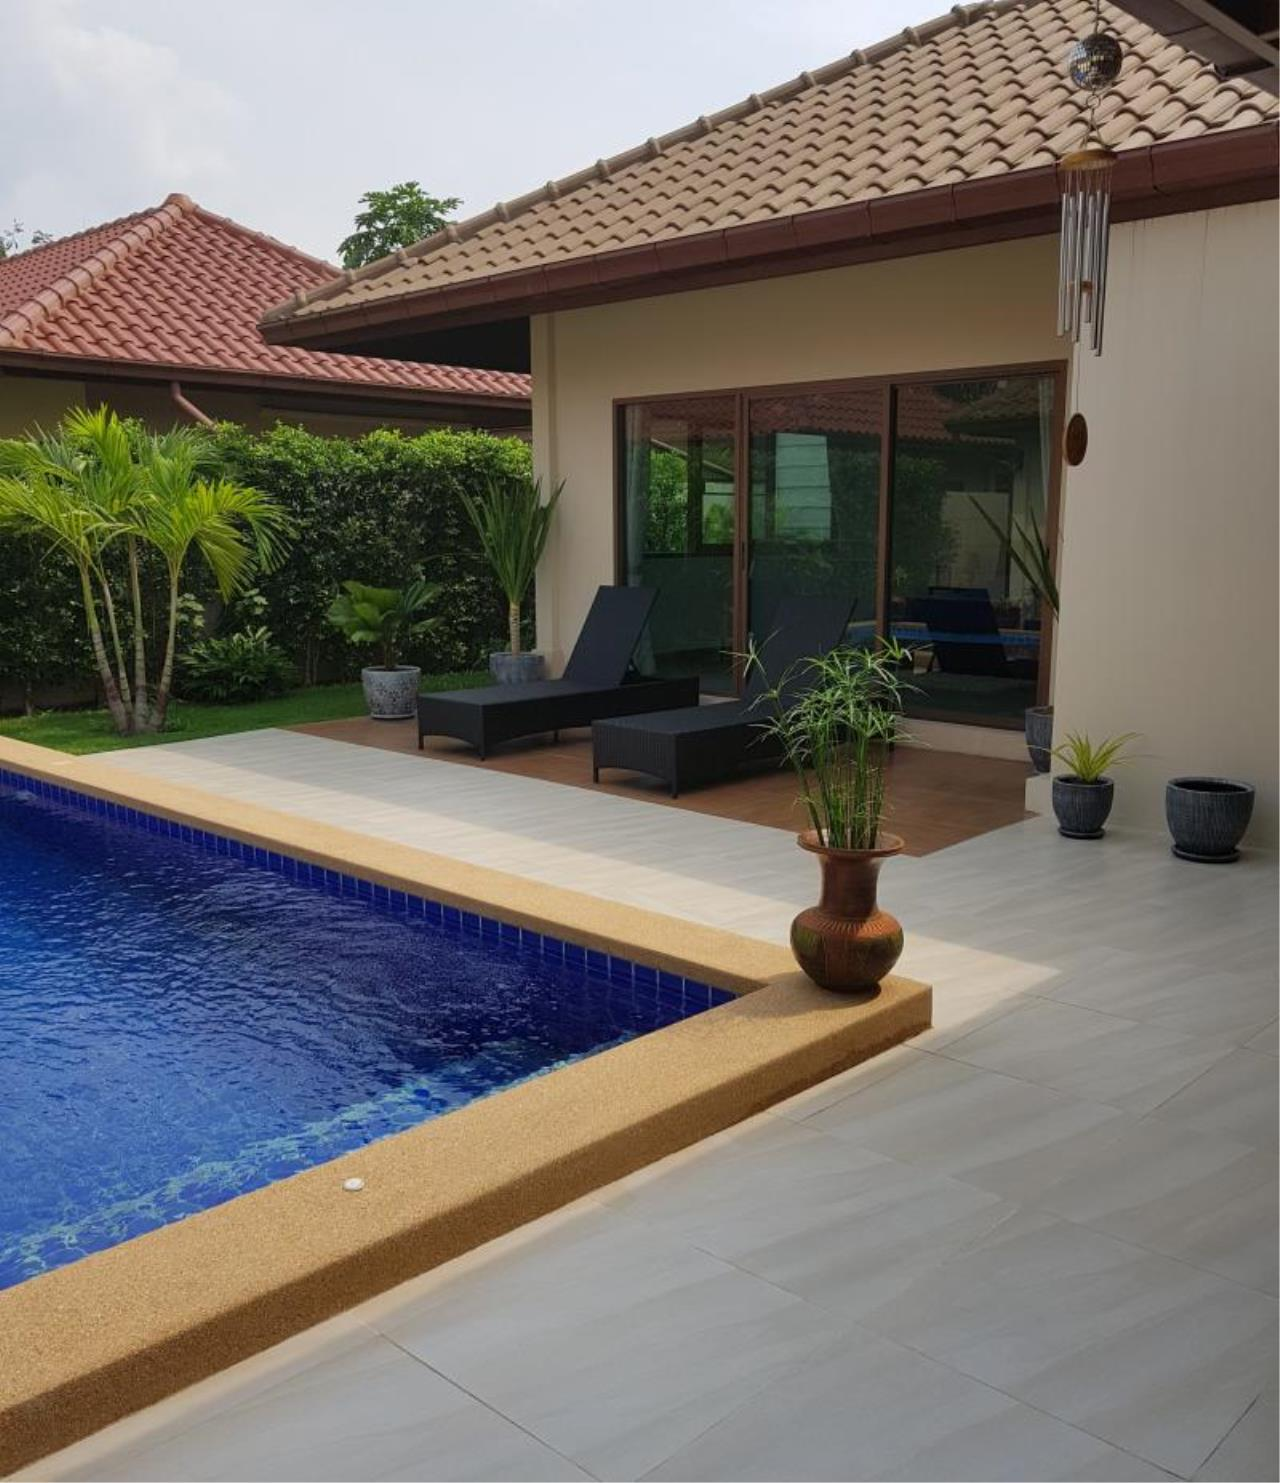 RE/MAX Town & Country Property Agency's Beautiful 3 bedroom house in Huay Yai 1